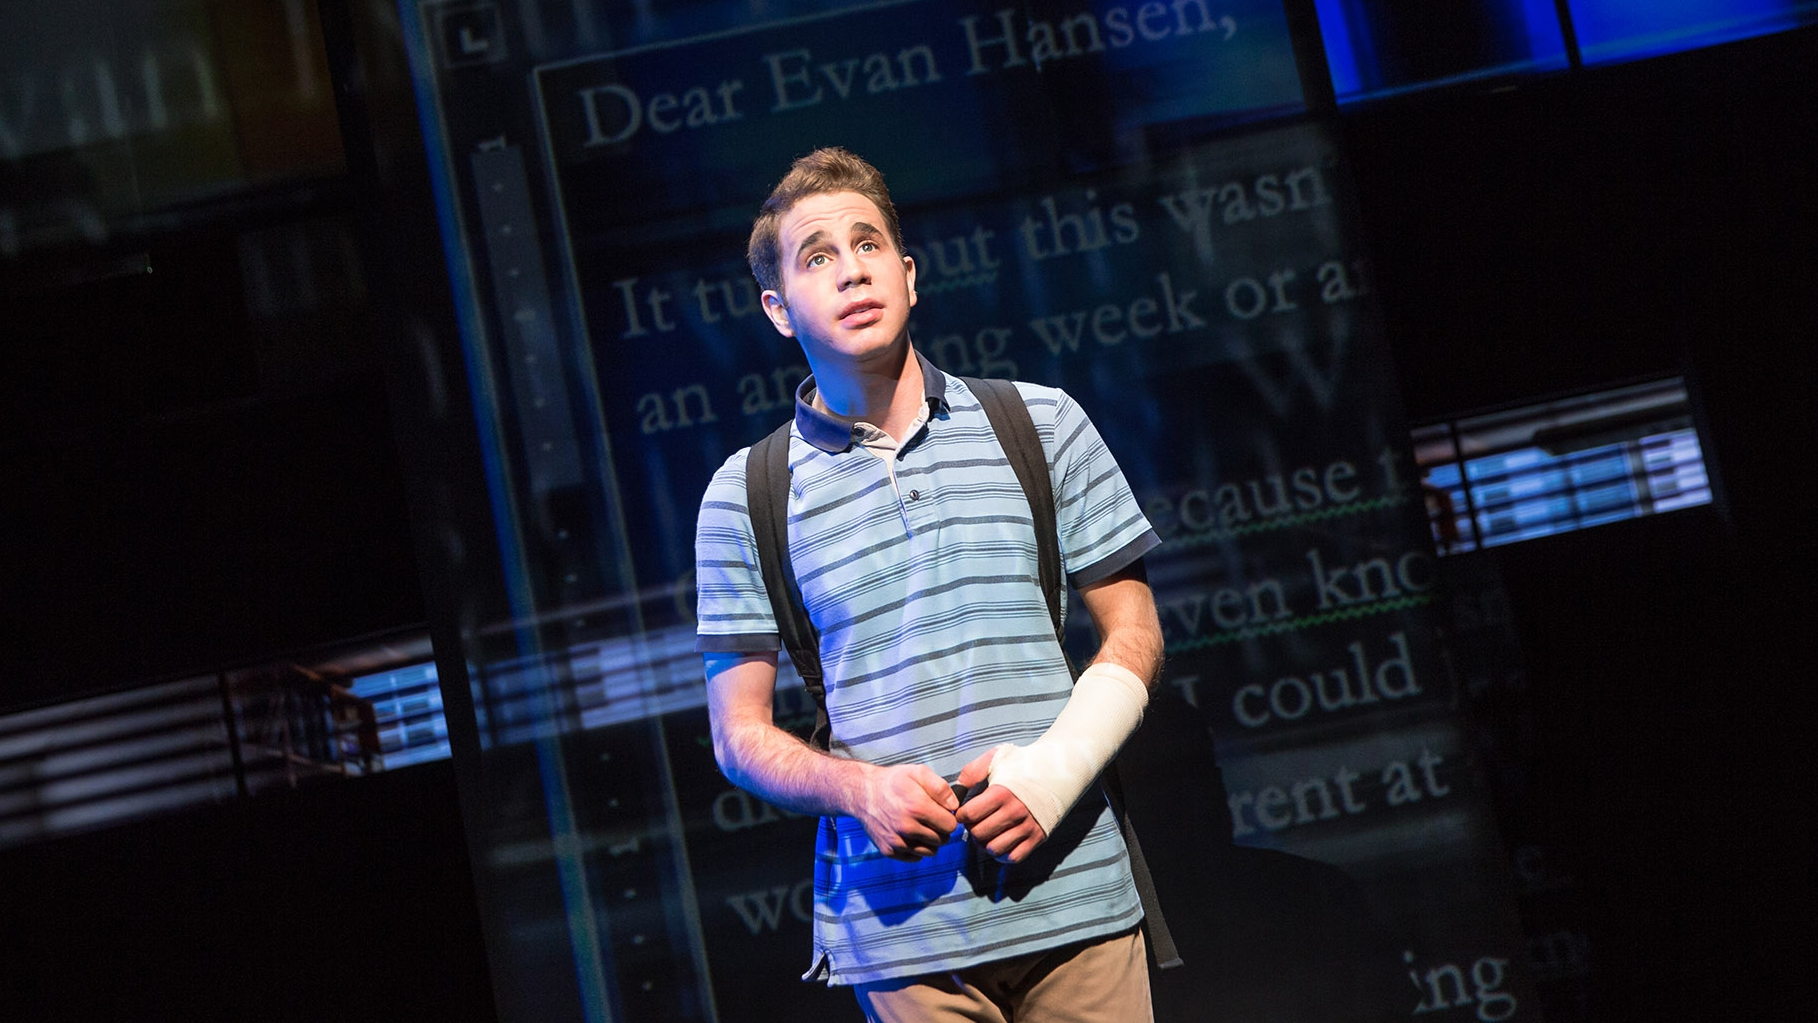 16 movies include Dear Evan Hansen, Evan classmate dies by suicide, and then he entangles in a series of lies.